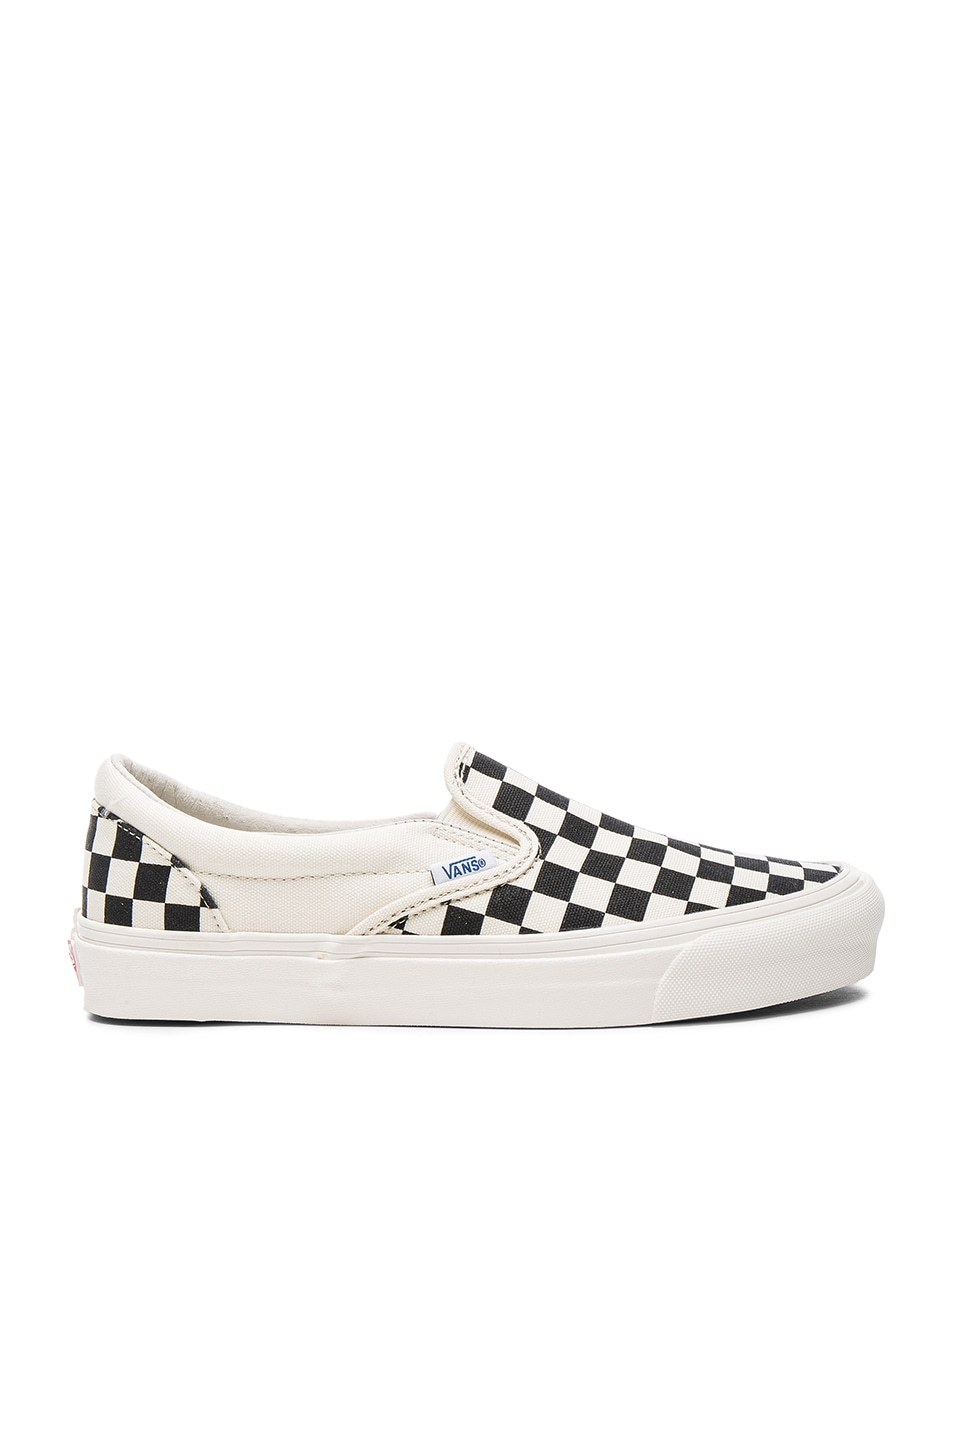 vans vault og classic slip on checkerboard